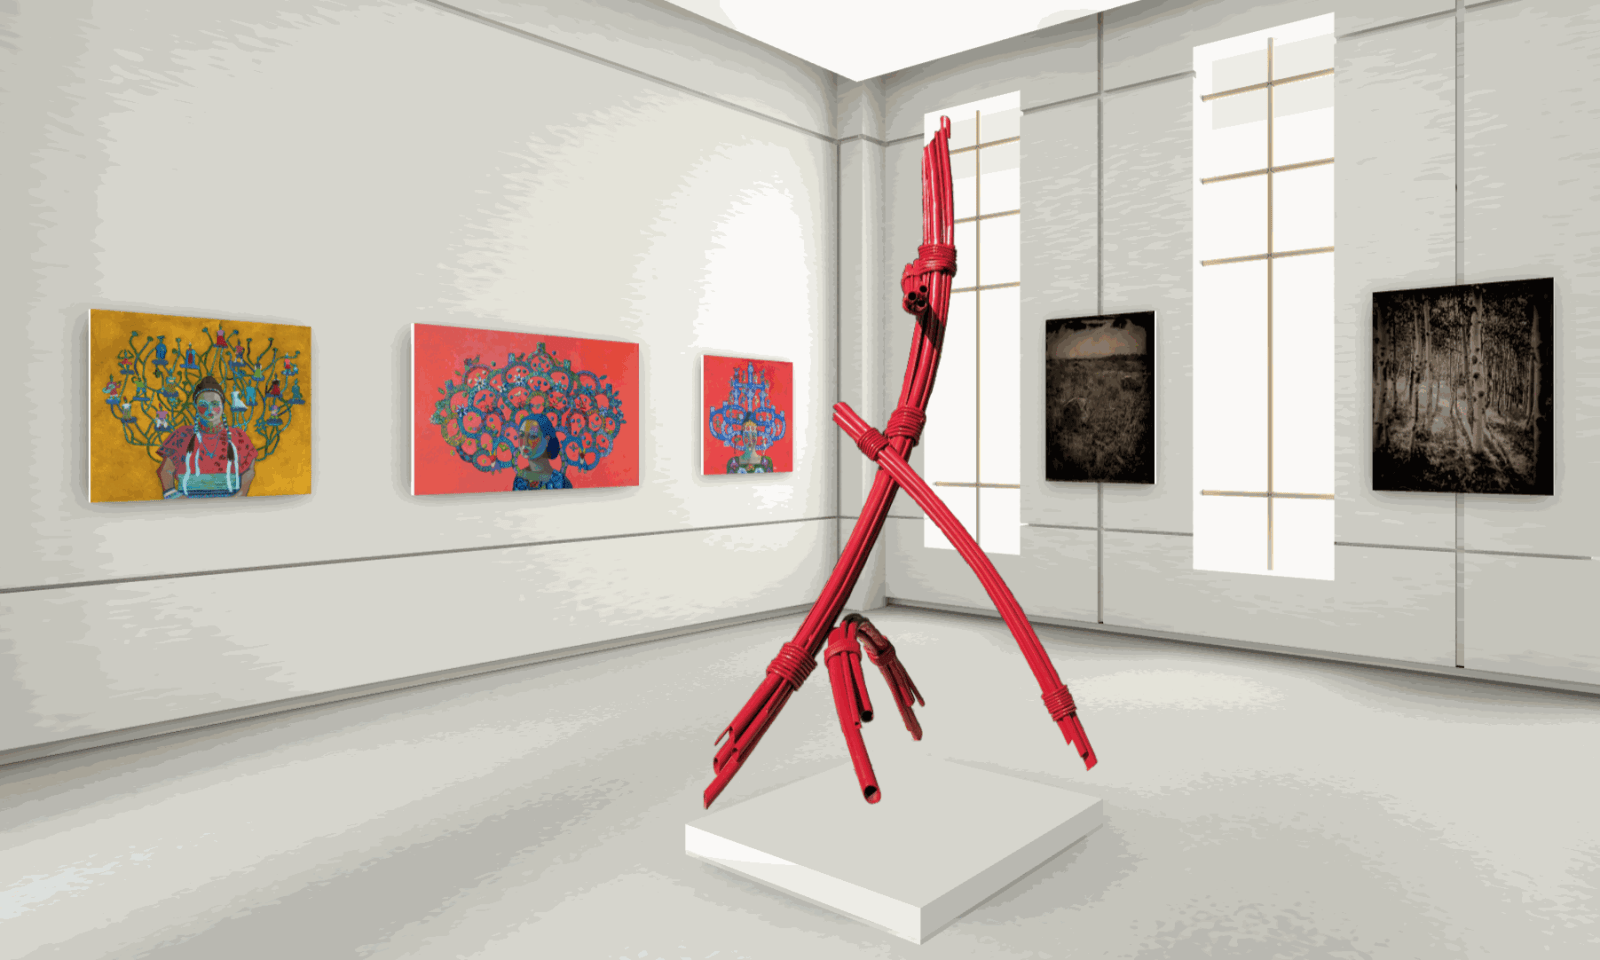 left to right: Paintings by Kathy Sosa, Steel Sculpture by Gregory Steel, photographs by London Amara